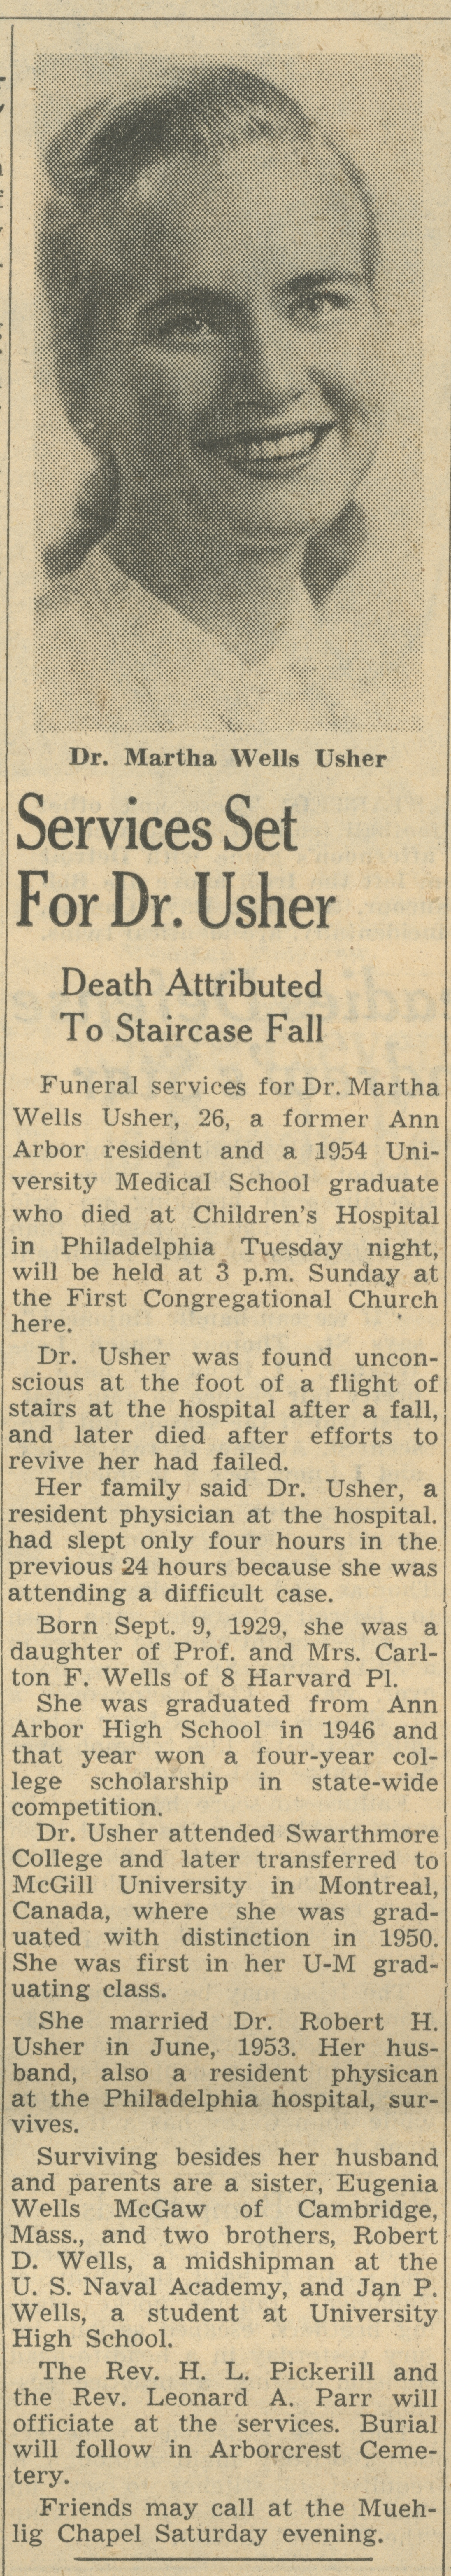 Services Set For Dr. Usher image